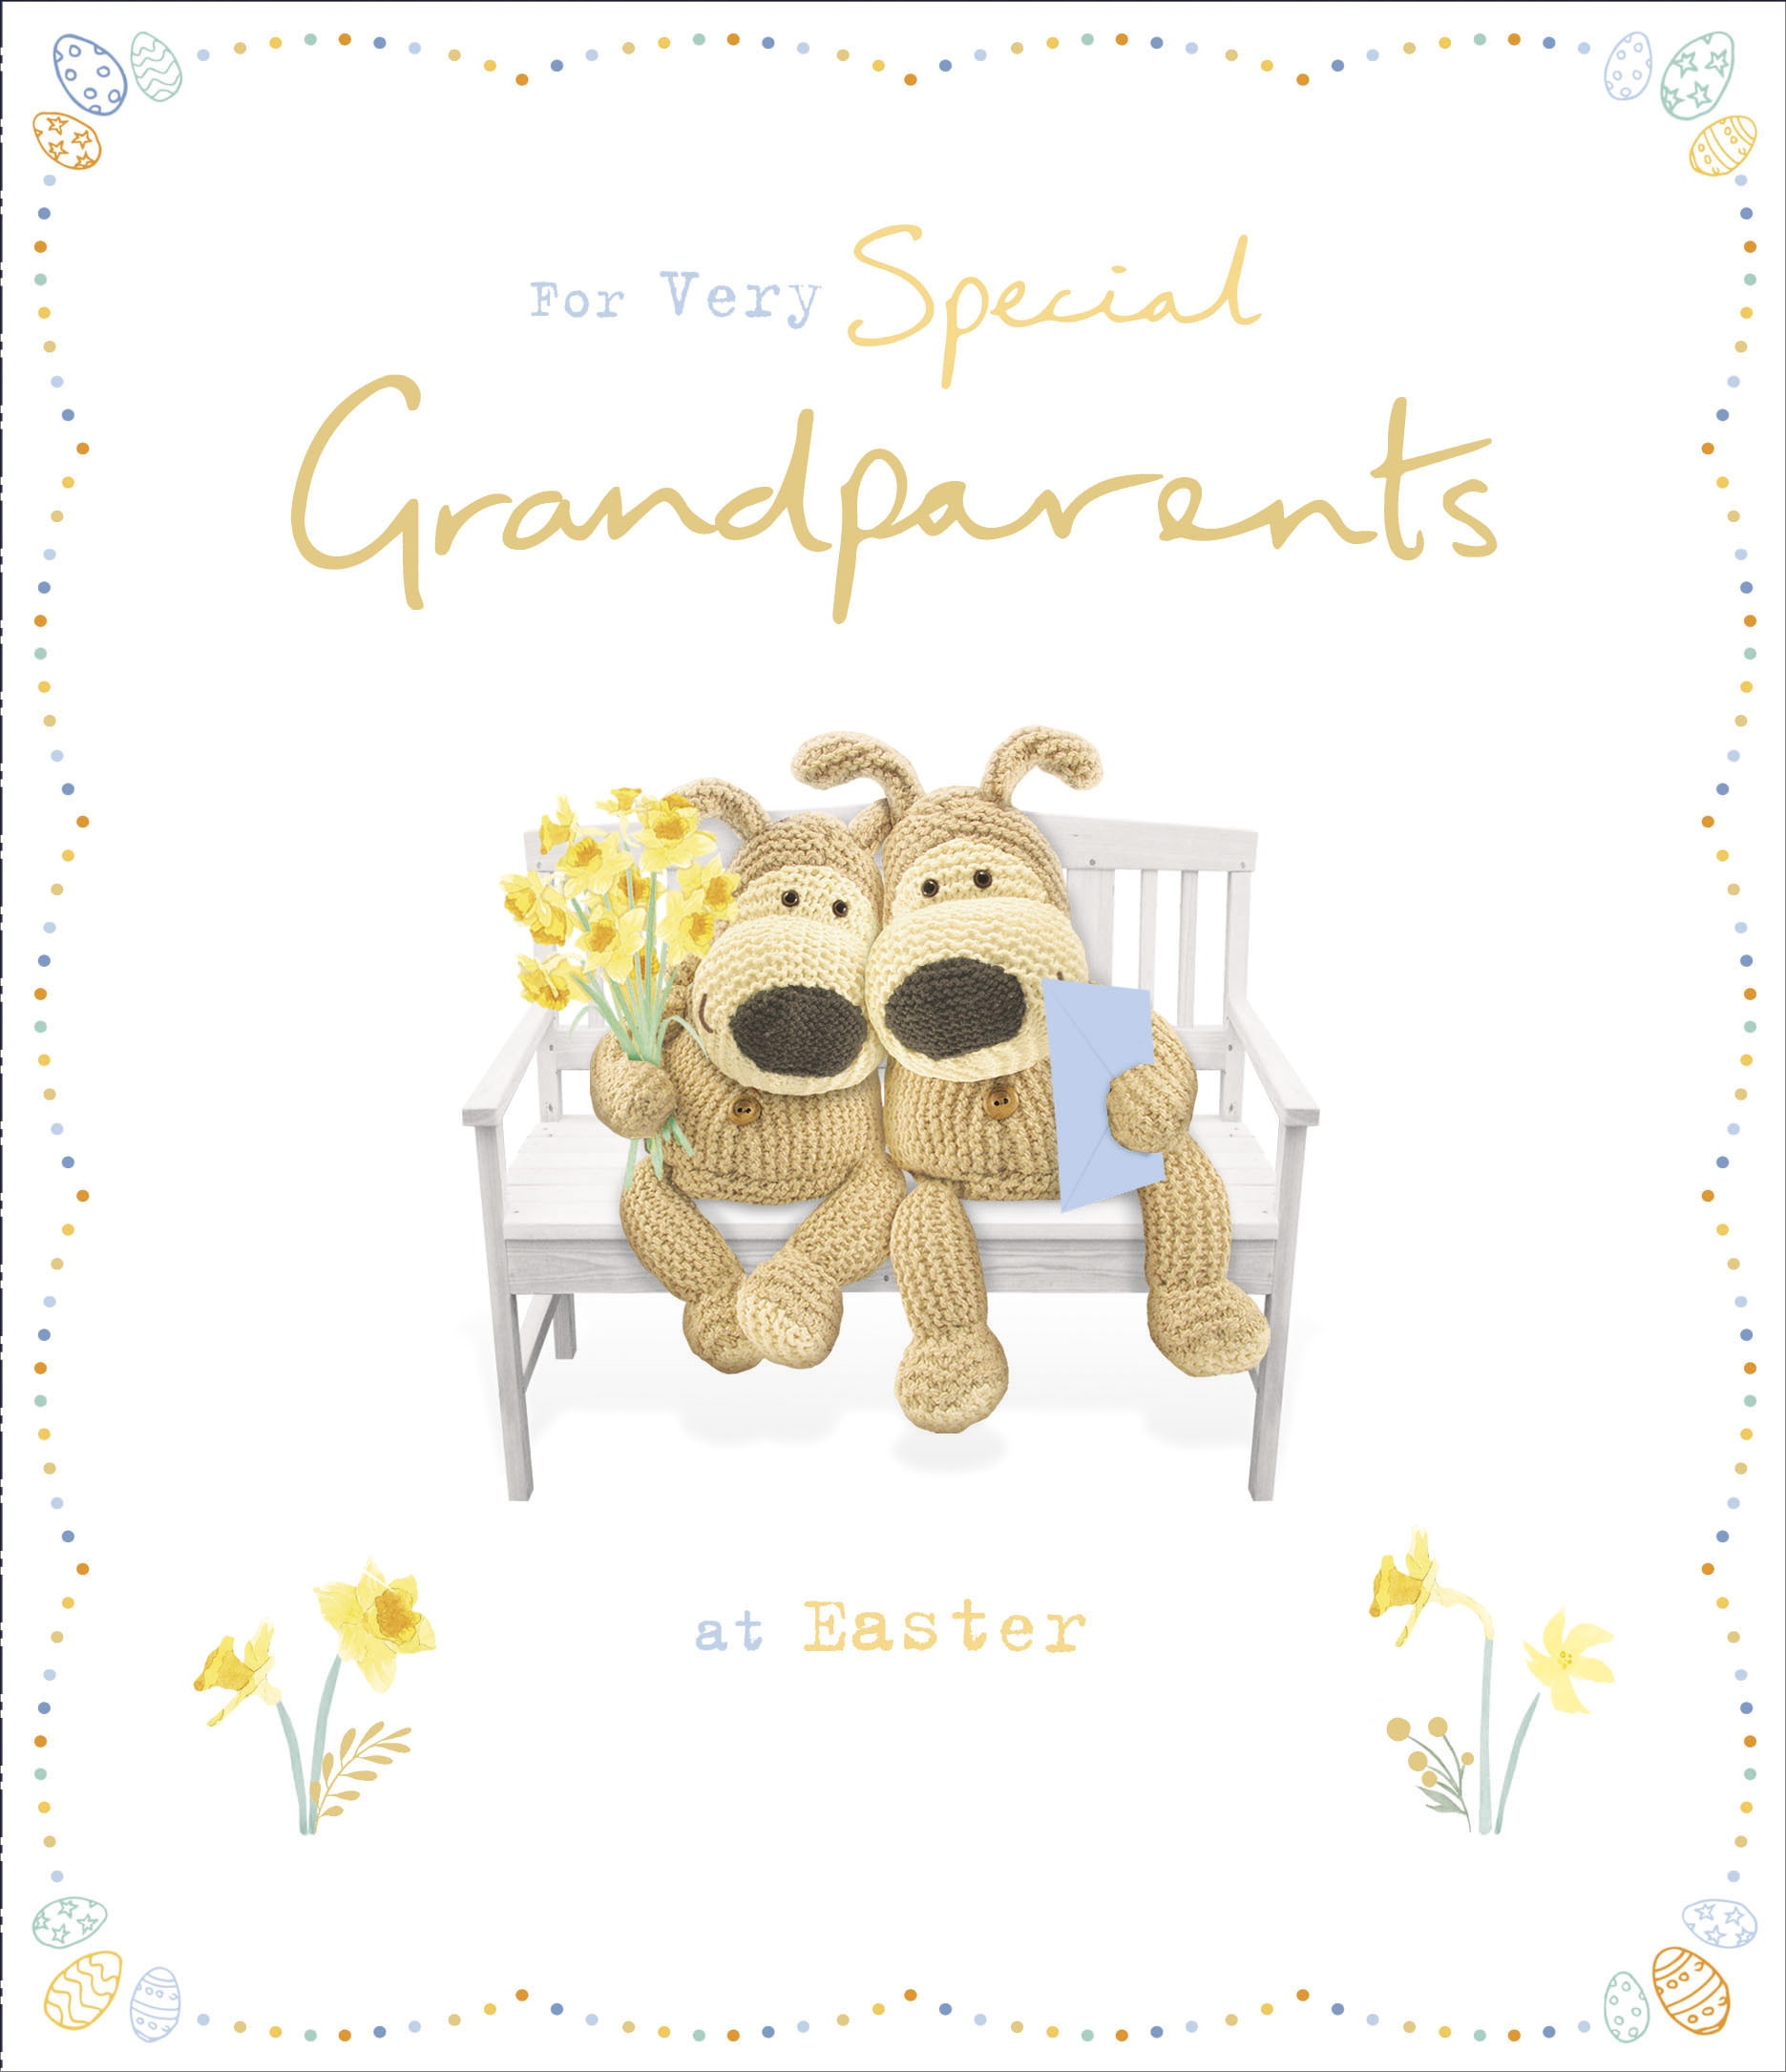 To A Very Special Grandpa Boofle Birthday Card